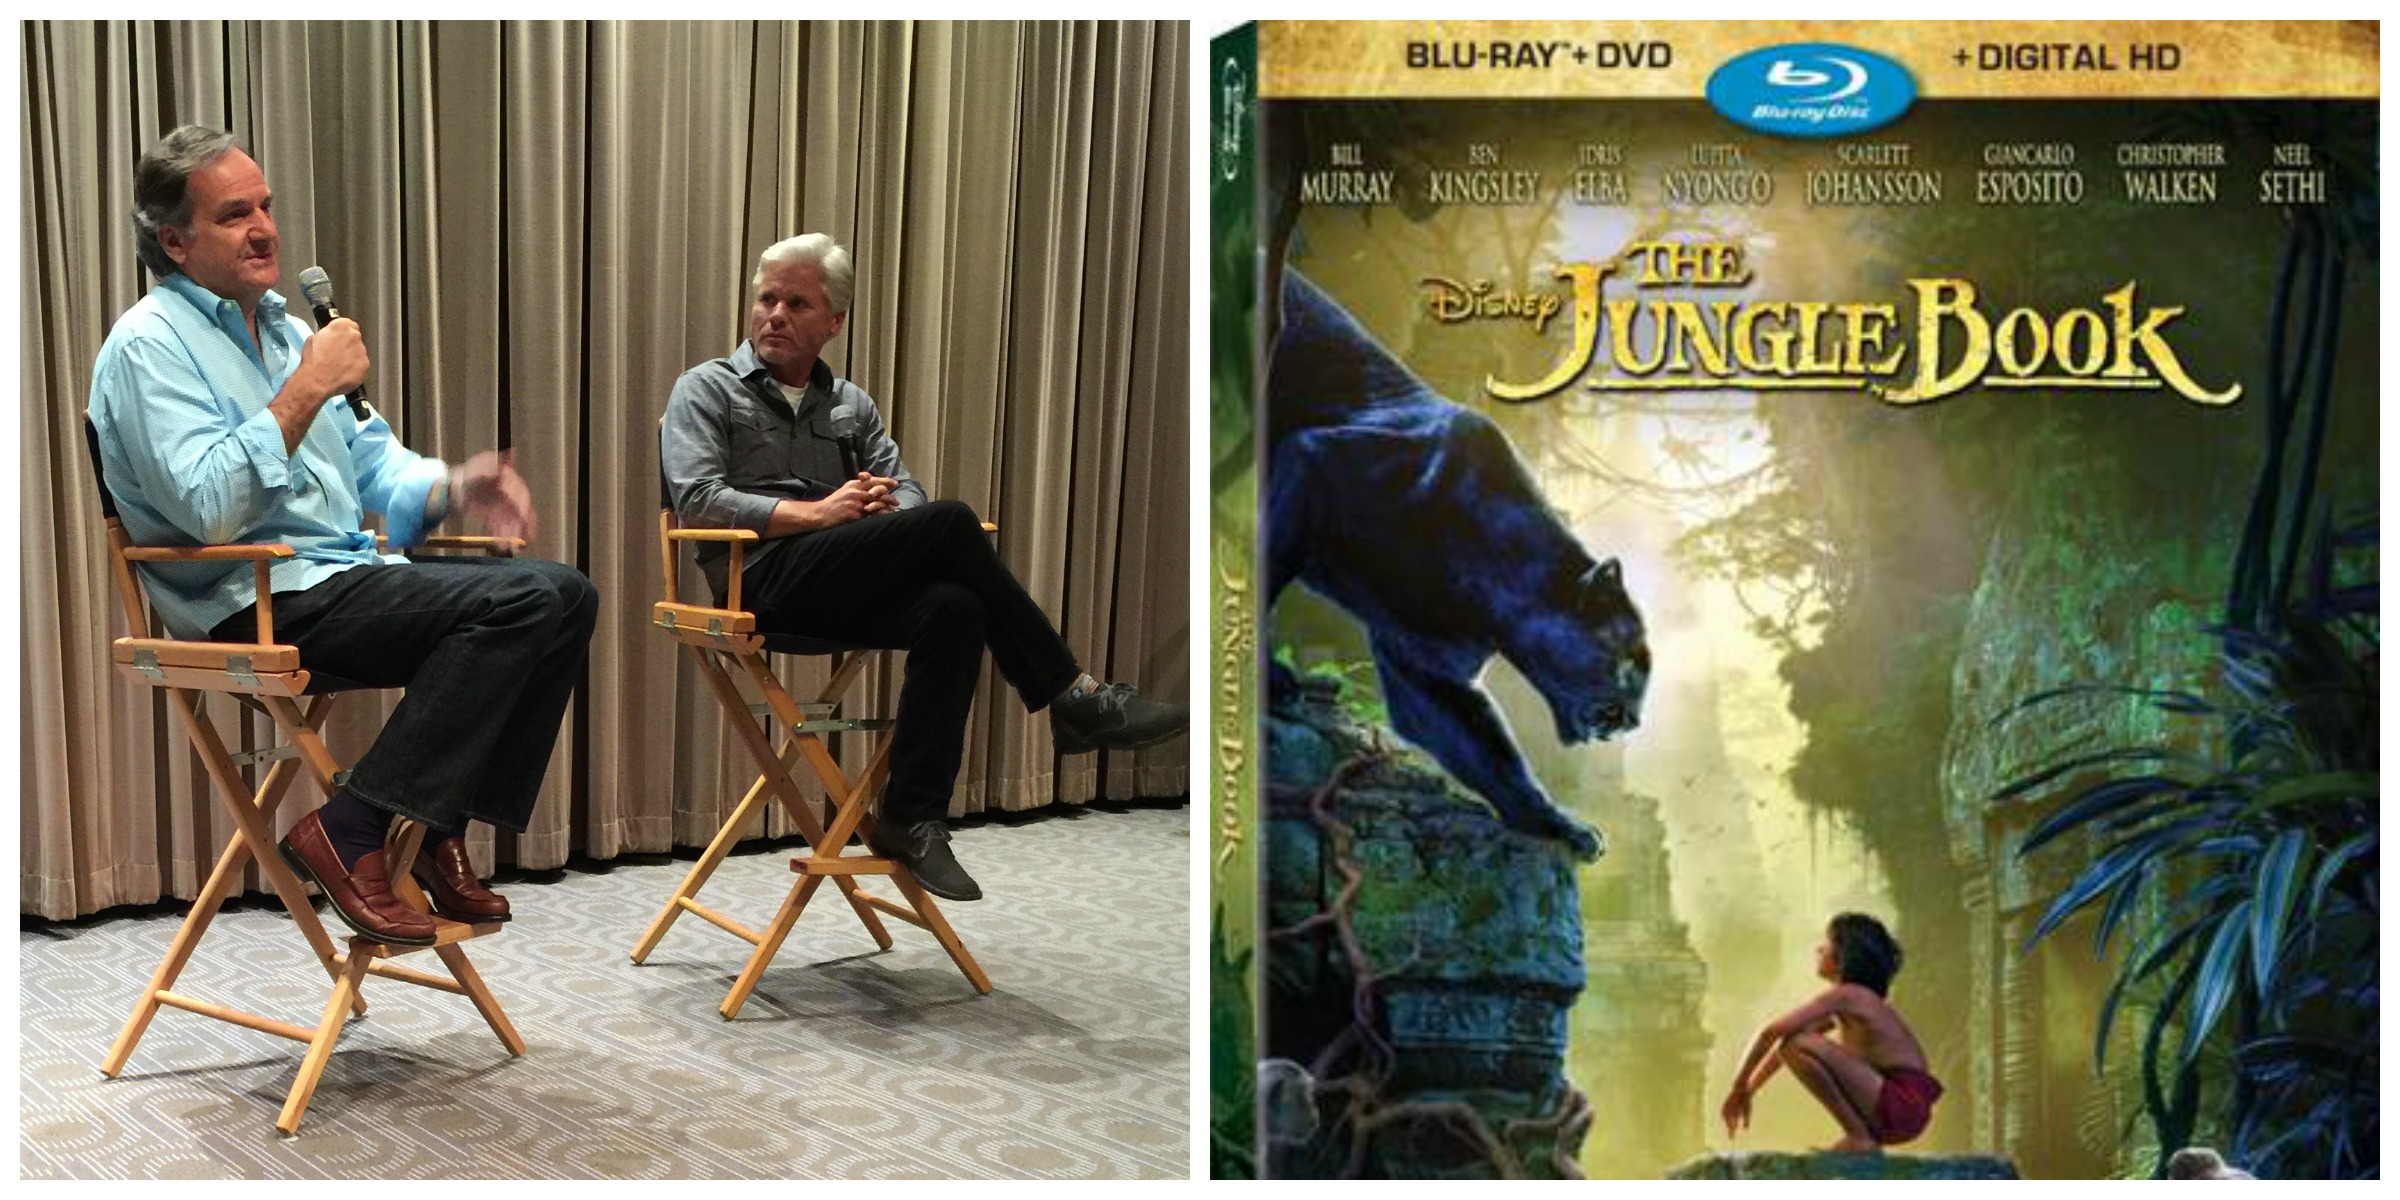 The Jungle Book Q&A with Producer Brigham Taylor and Visual Effects Supervisor Rob Legato #JungleBookBluray